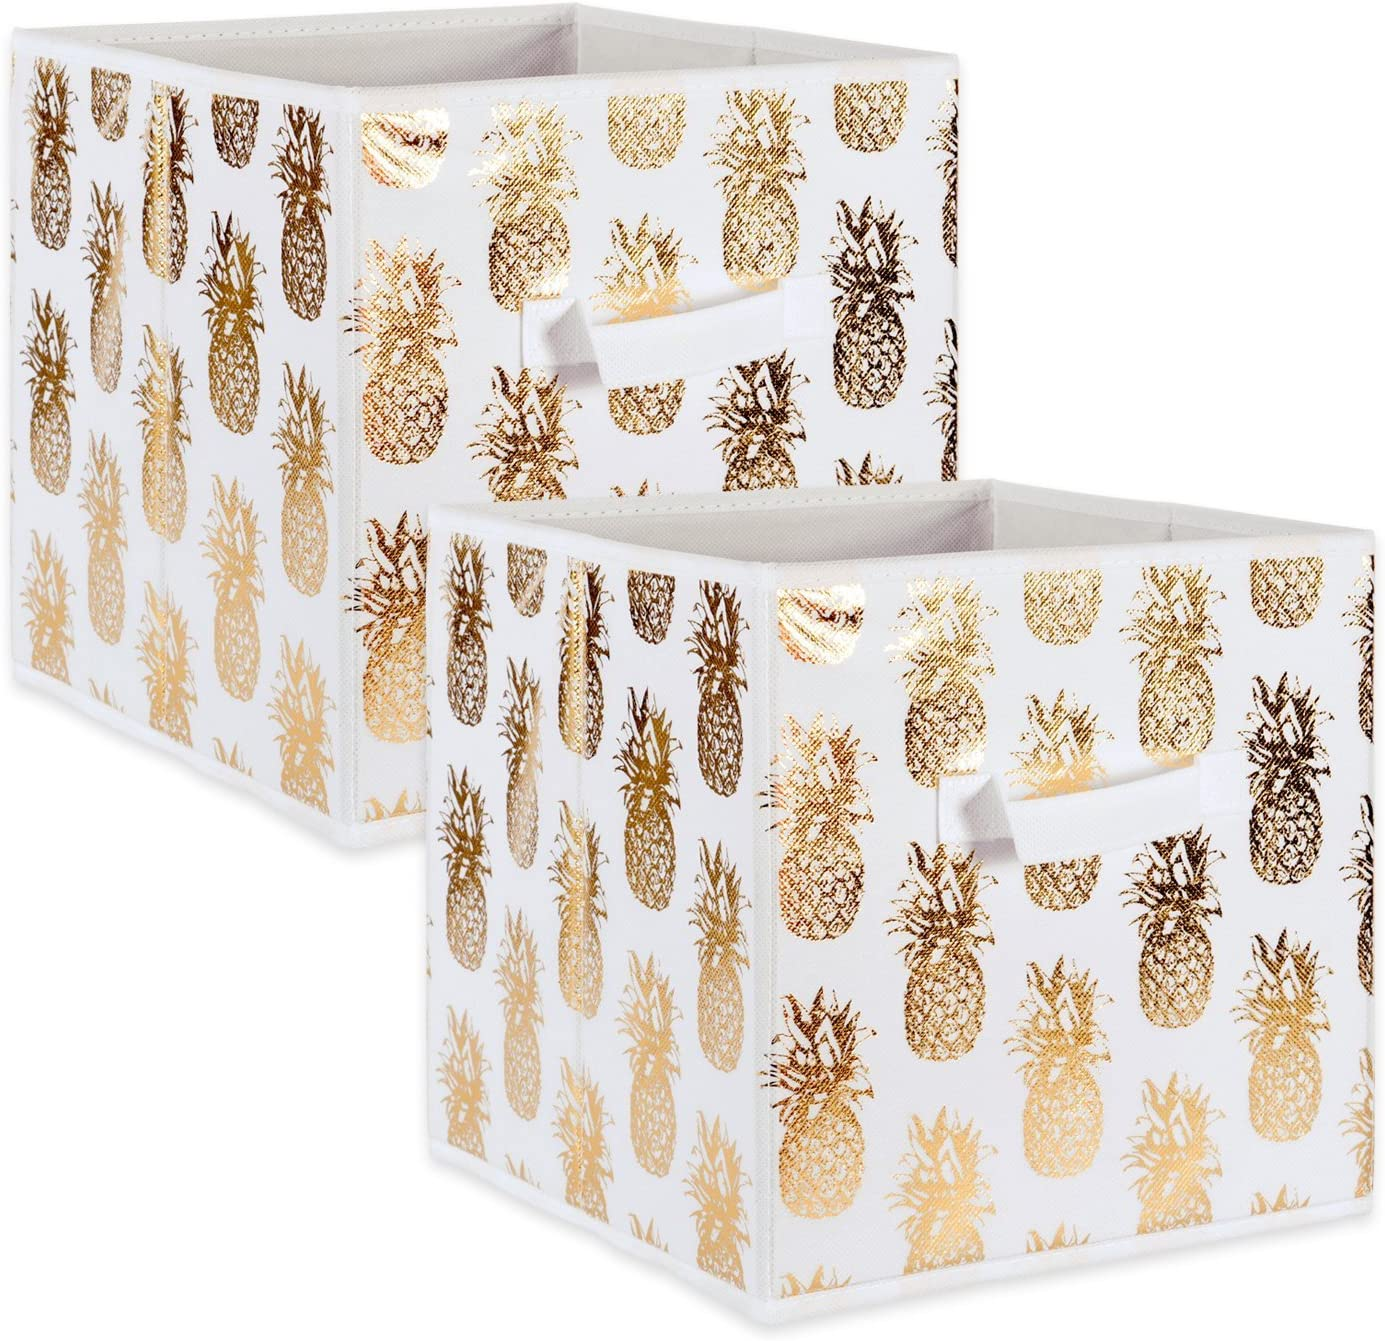 DII Foldable Fabric Storage Containers (13x13x13) Pineapple Set of 2, Large (2), White/Gold